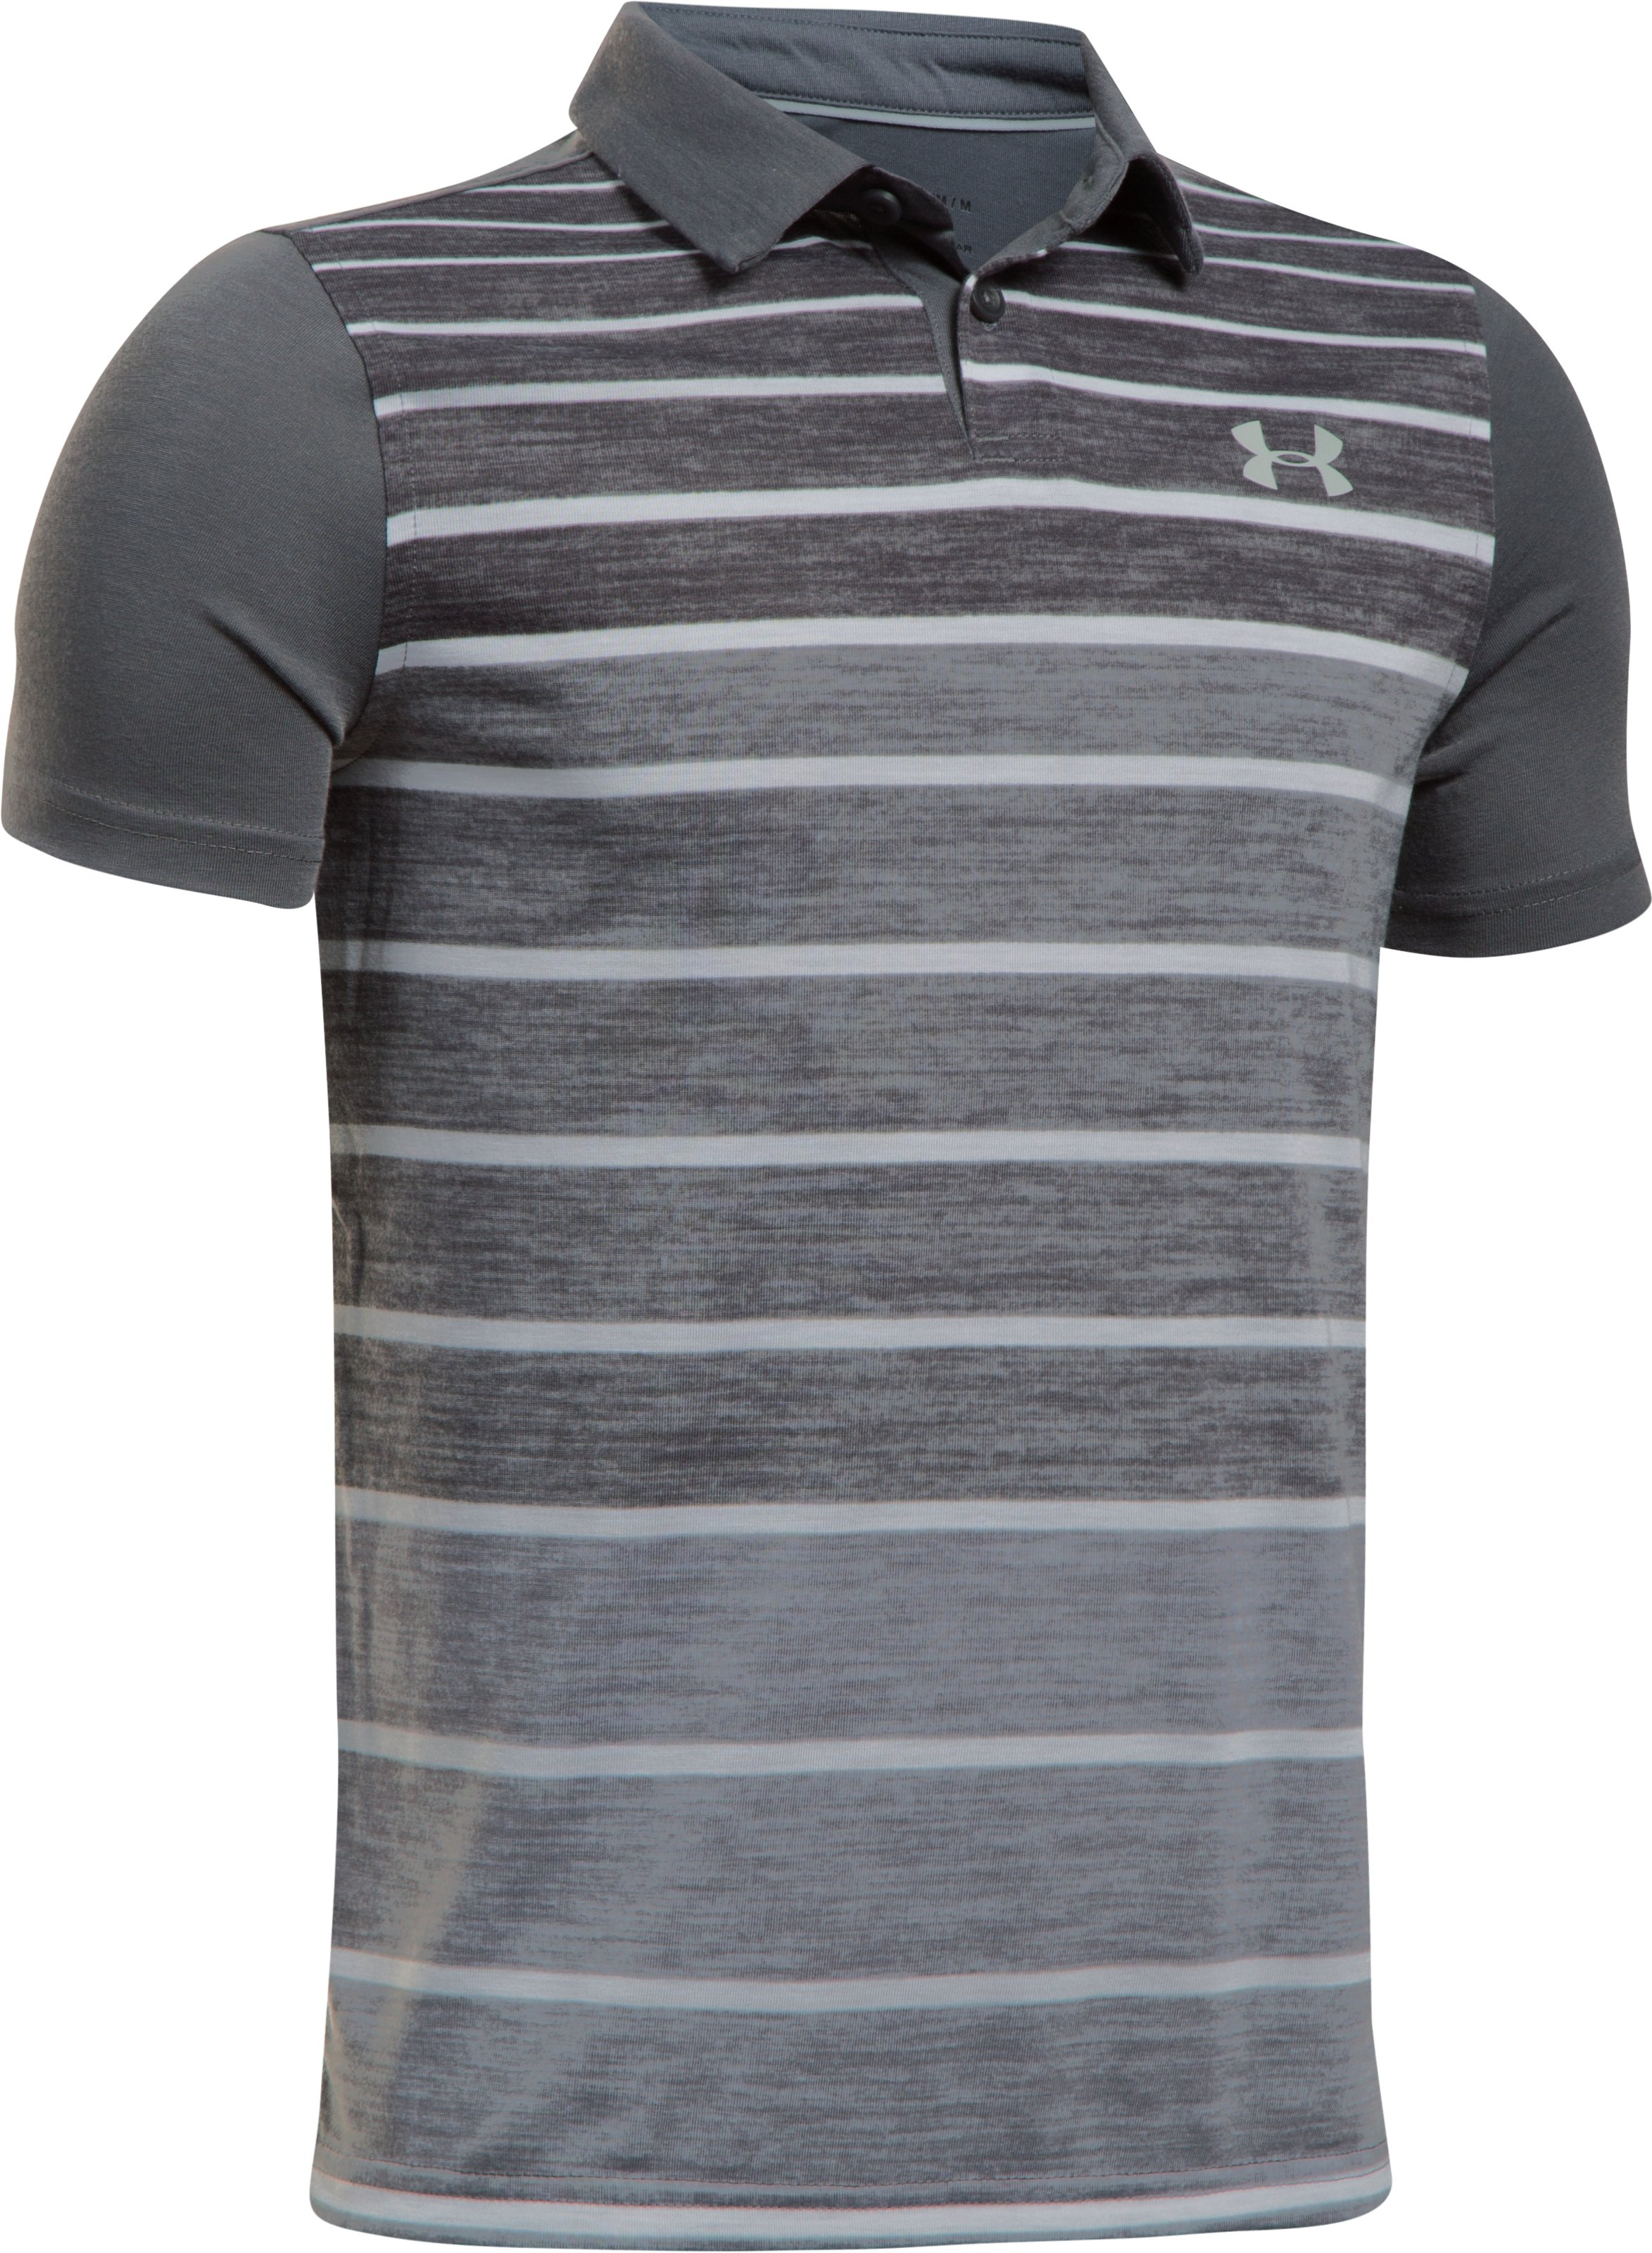 Boys' UA Threadborne Polo, RHINO GRAY, undefined